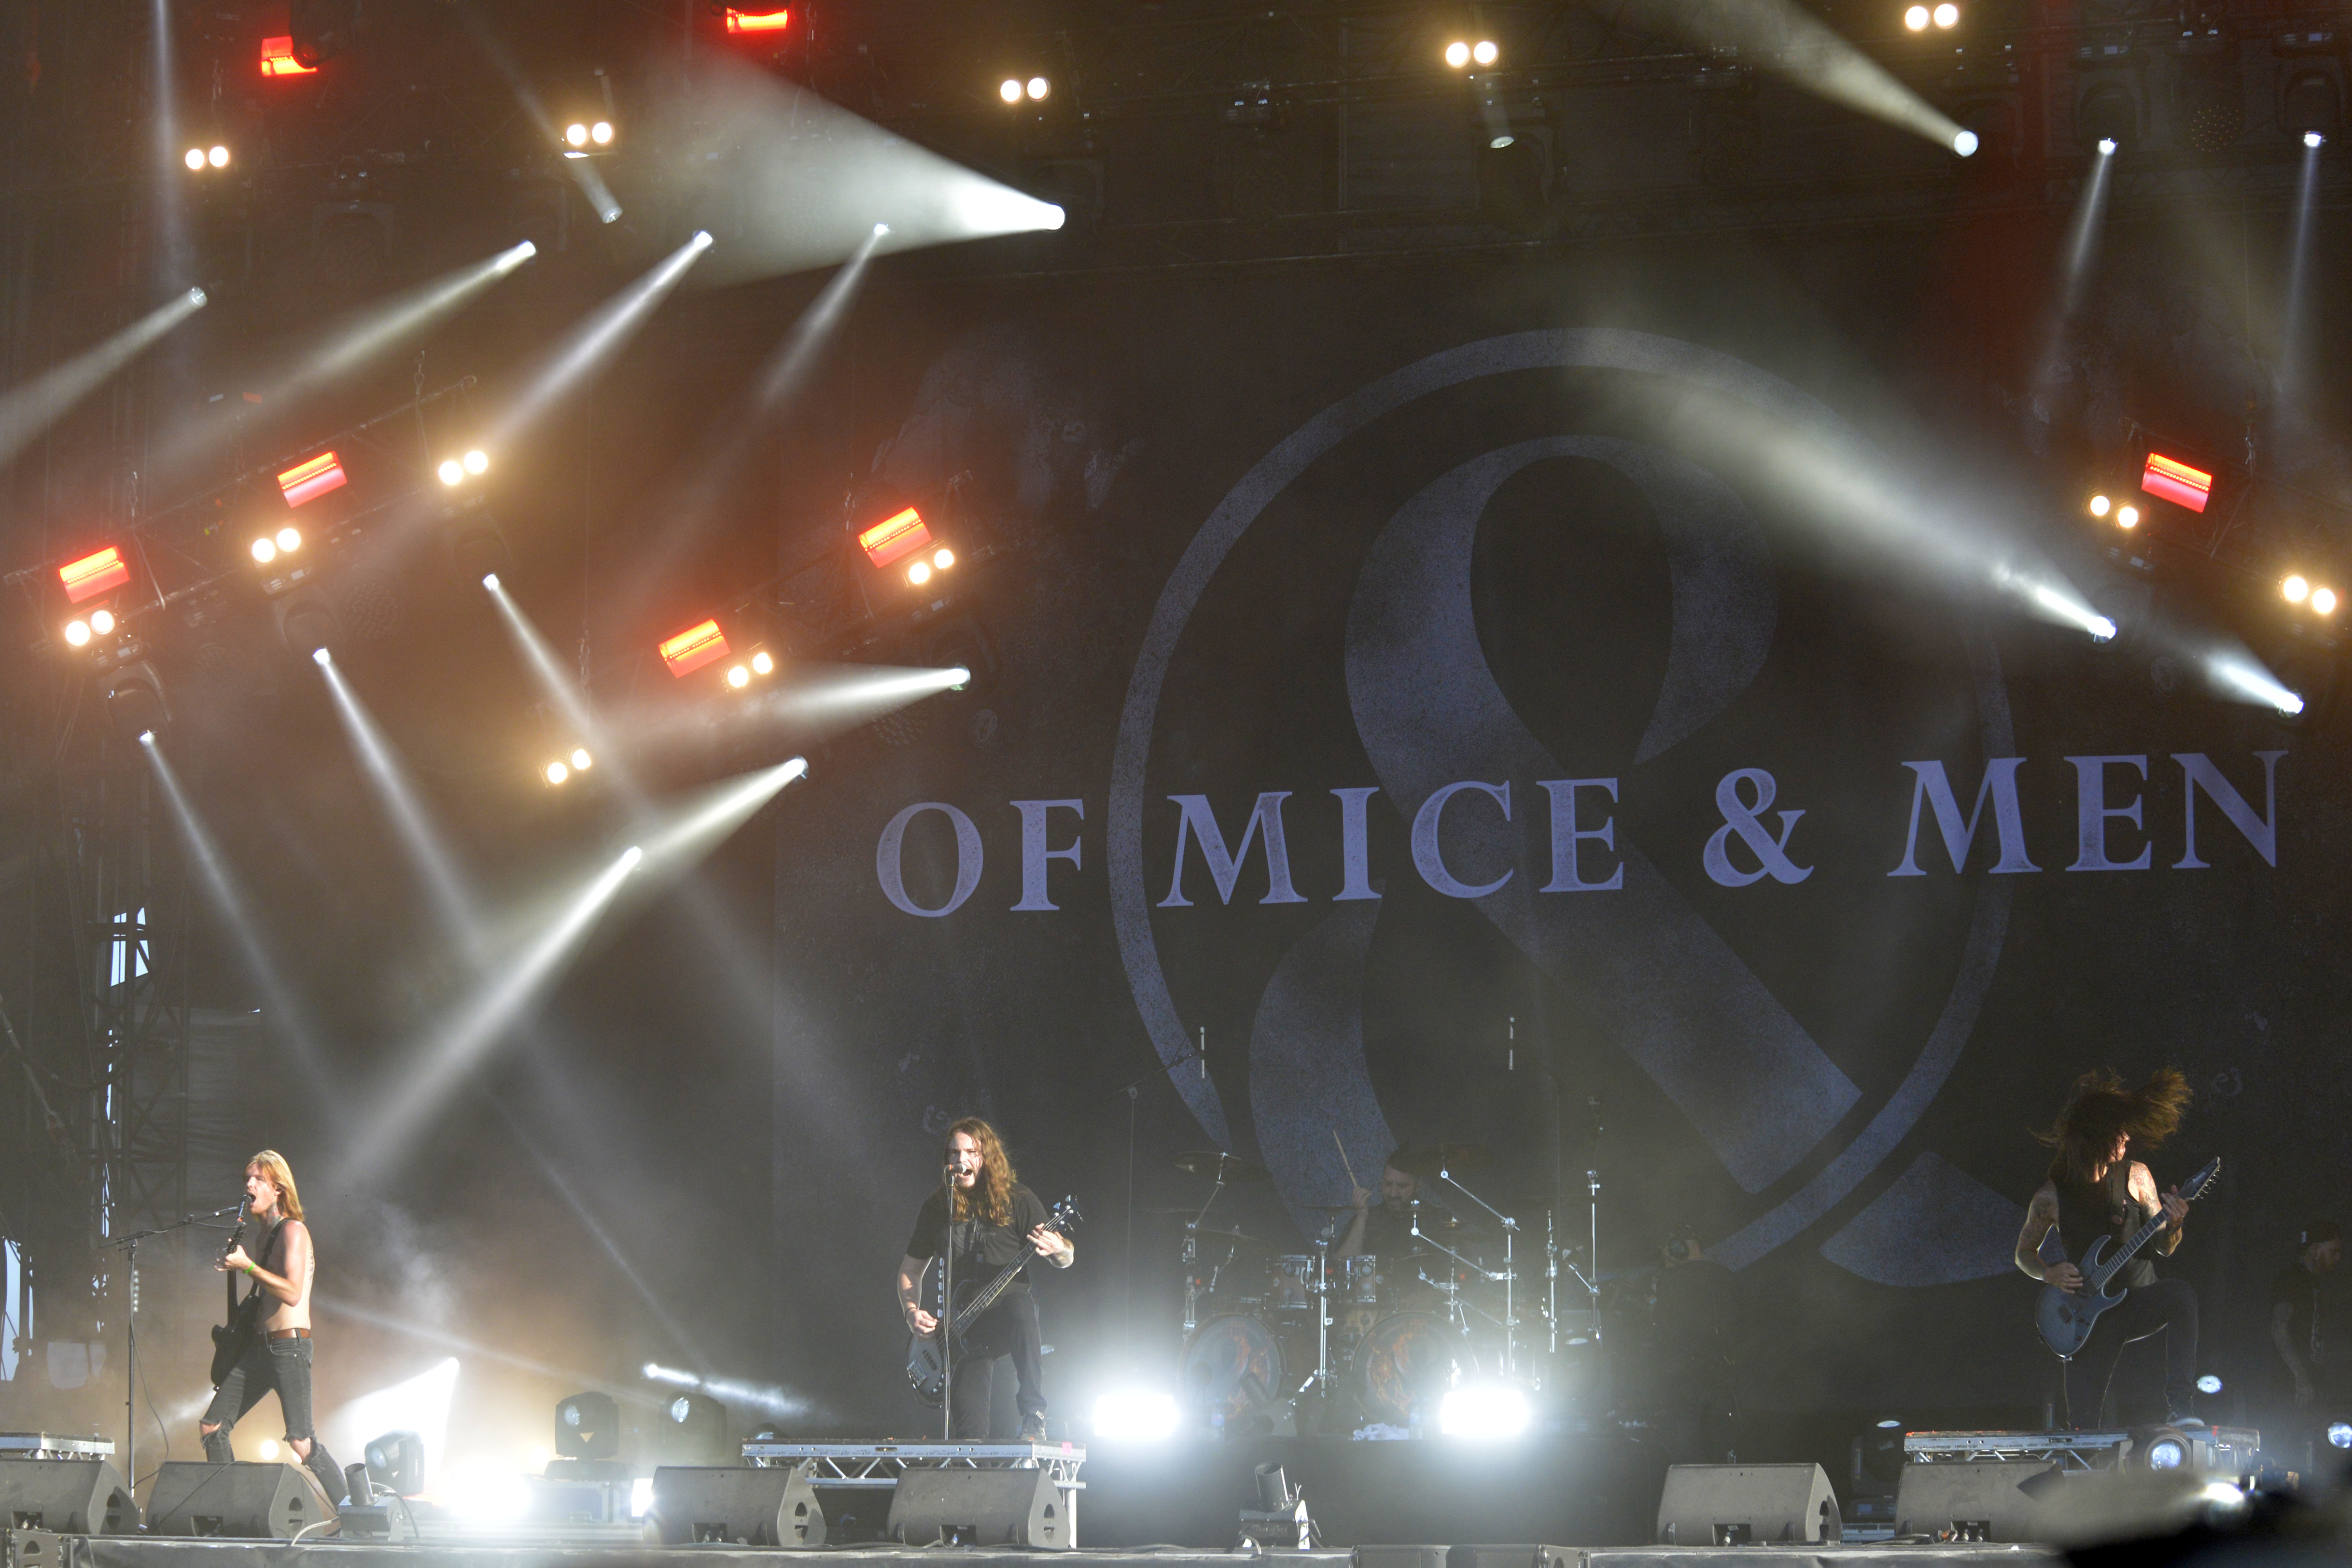 Of Mice & Men (band) - Wikipedia